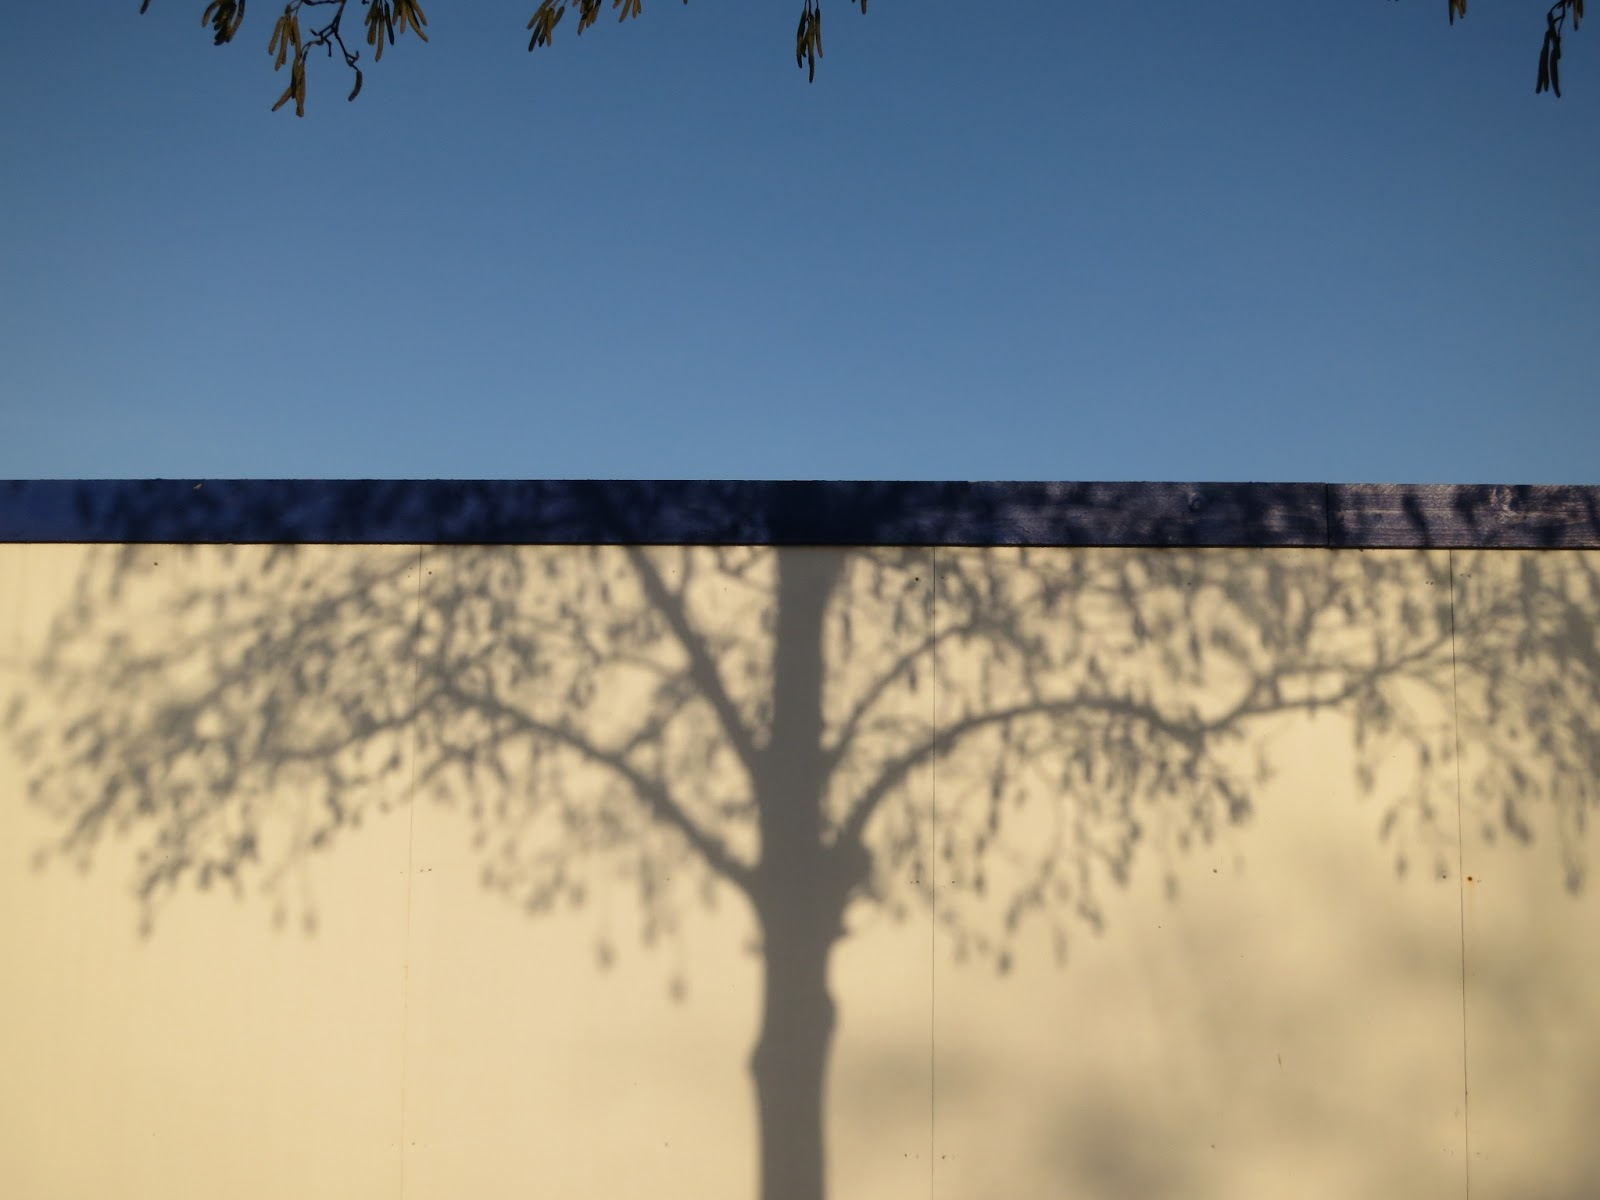 Shadow of the tree on the building site hoarding.